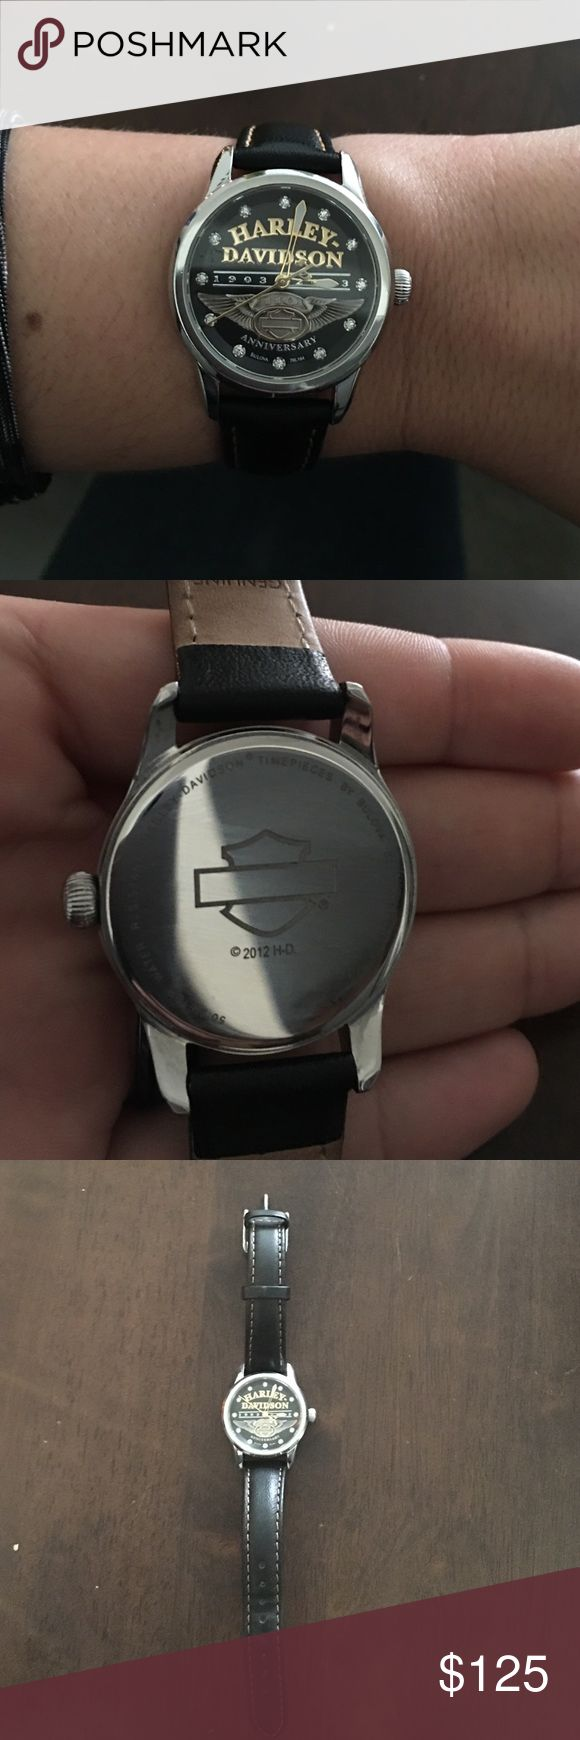 Harley Davidson watch Bulova Harley Davidson 110 year anniversary watch! Really good condition. Leather band! Offers accepted...no low balls please. Harley-Davidson Accessories Watches